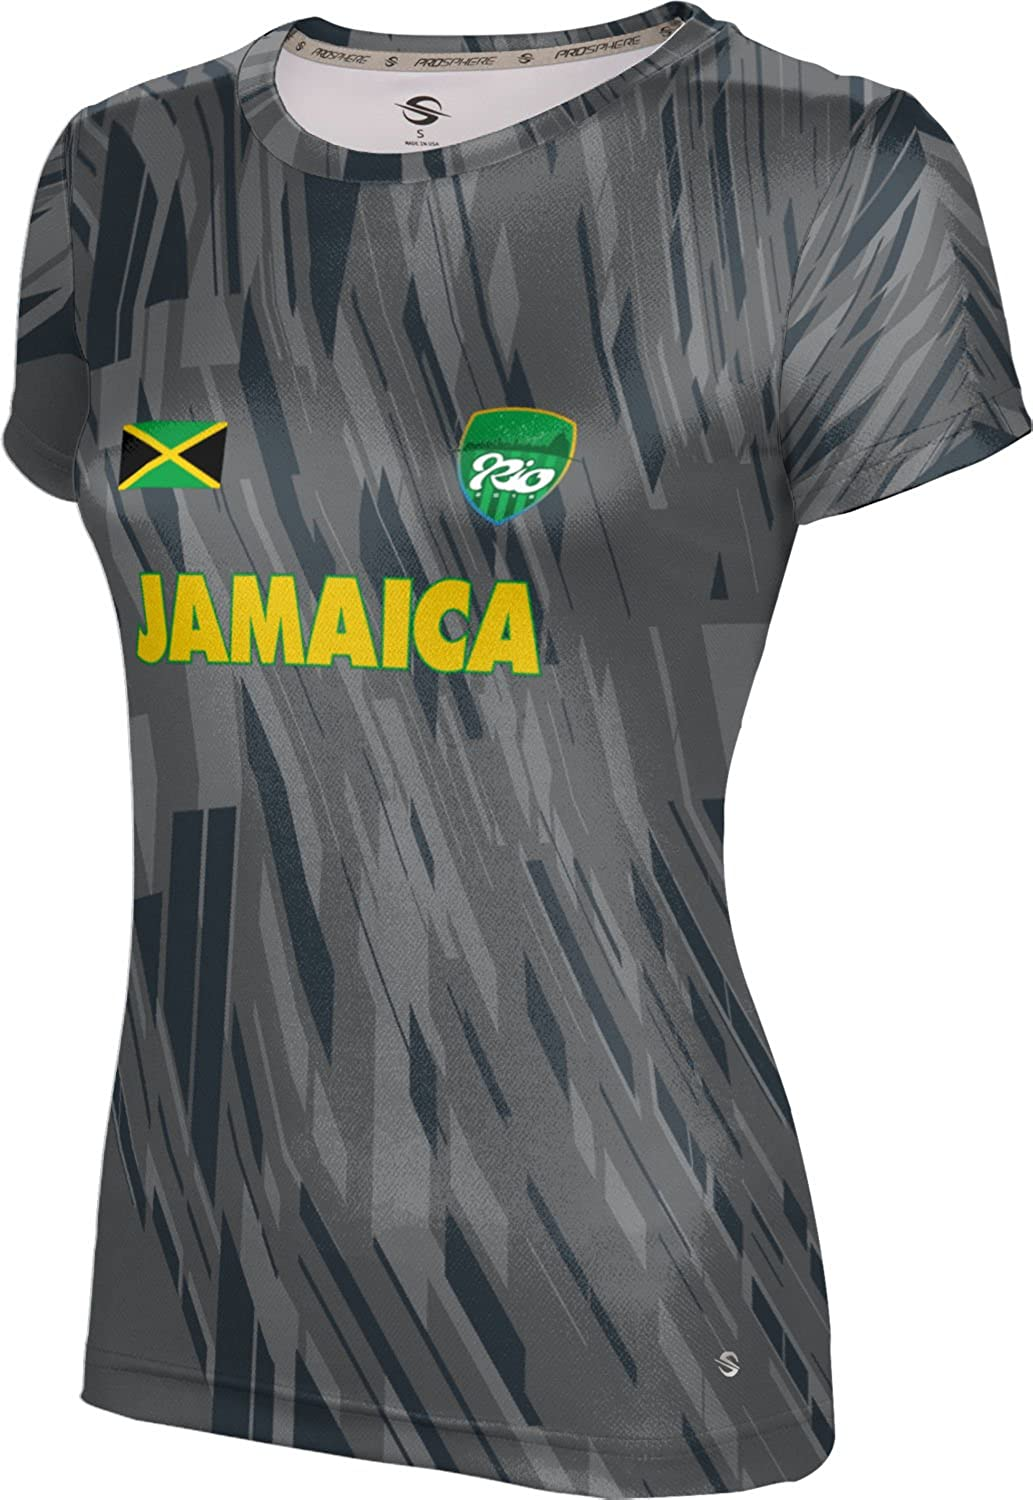 ProSphere Women's Rio 2016 Team Jamaica Tech tee